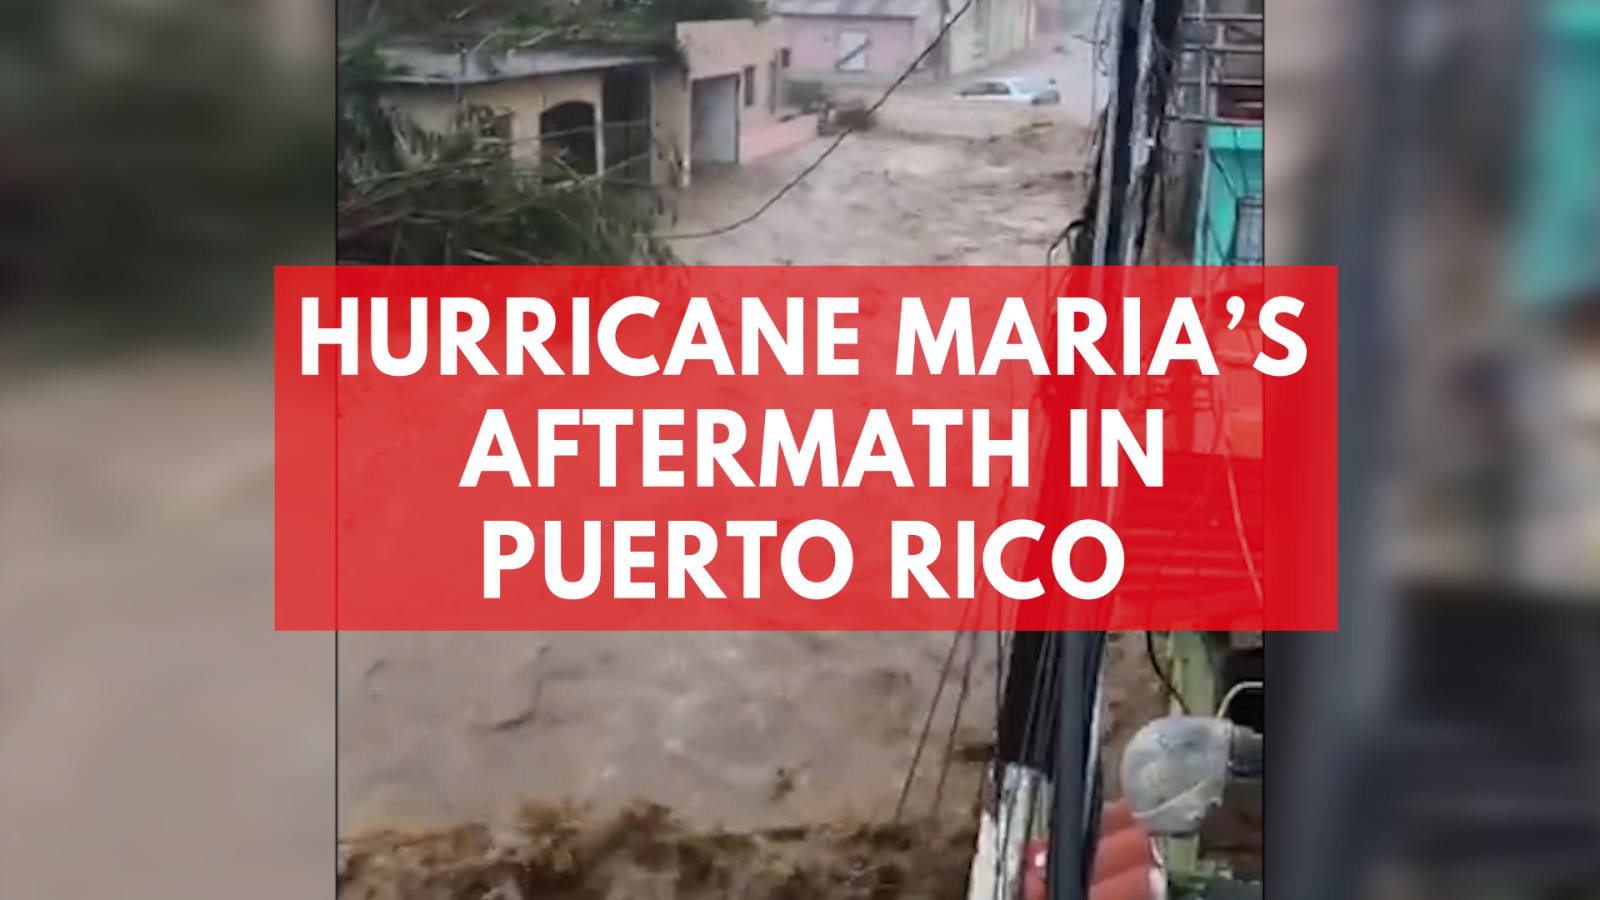 Hurricane Maria's aftermath in Puerto Rico